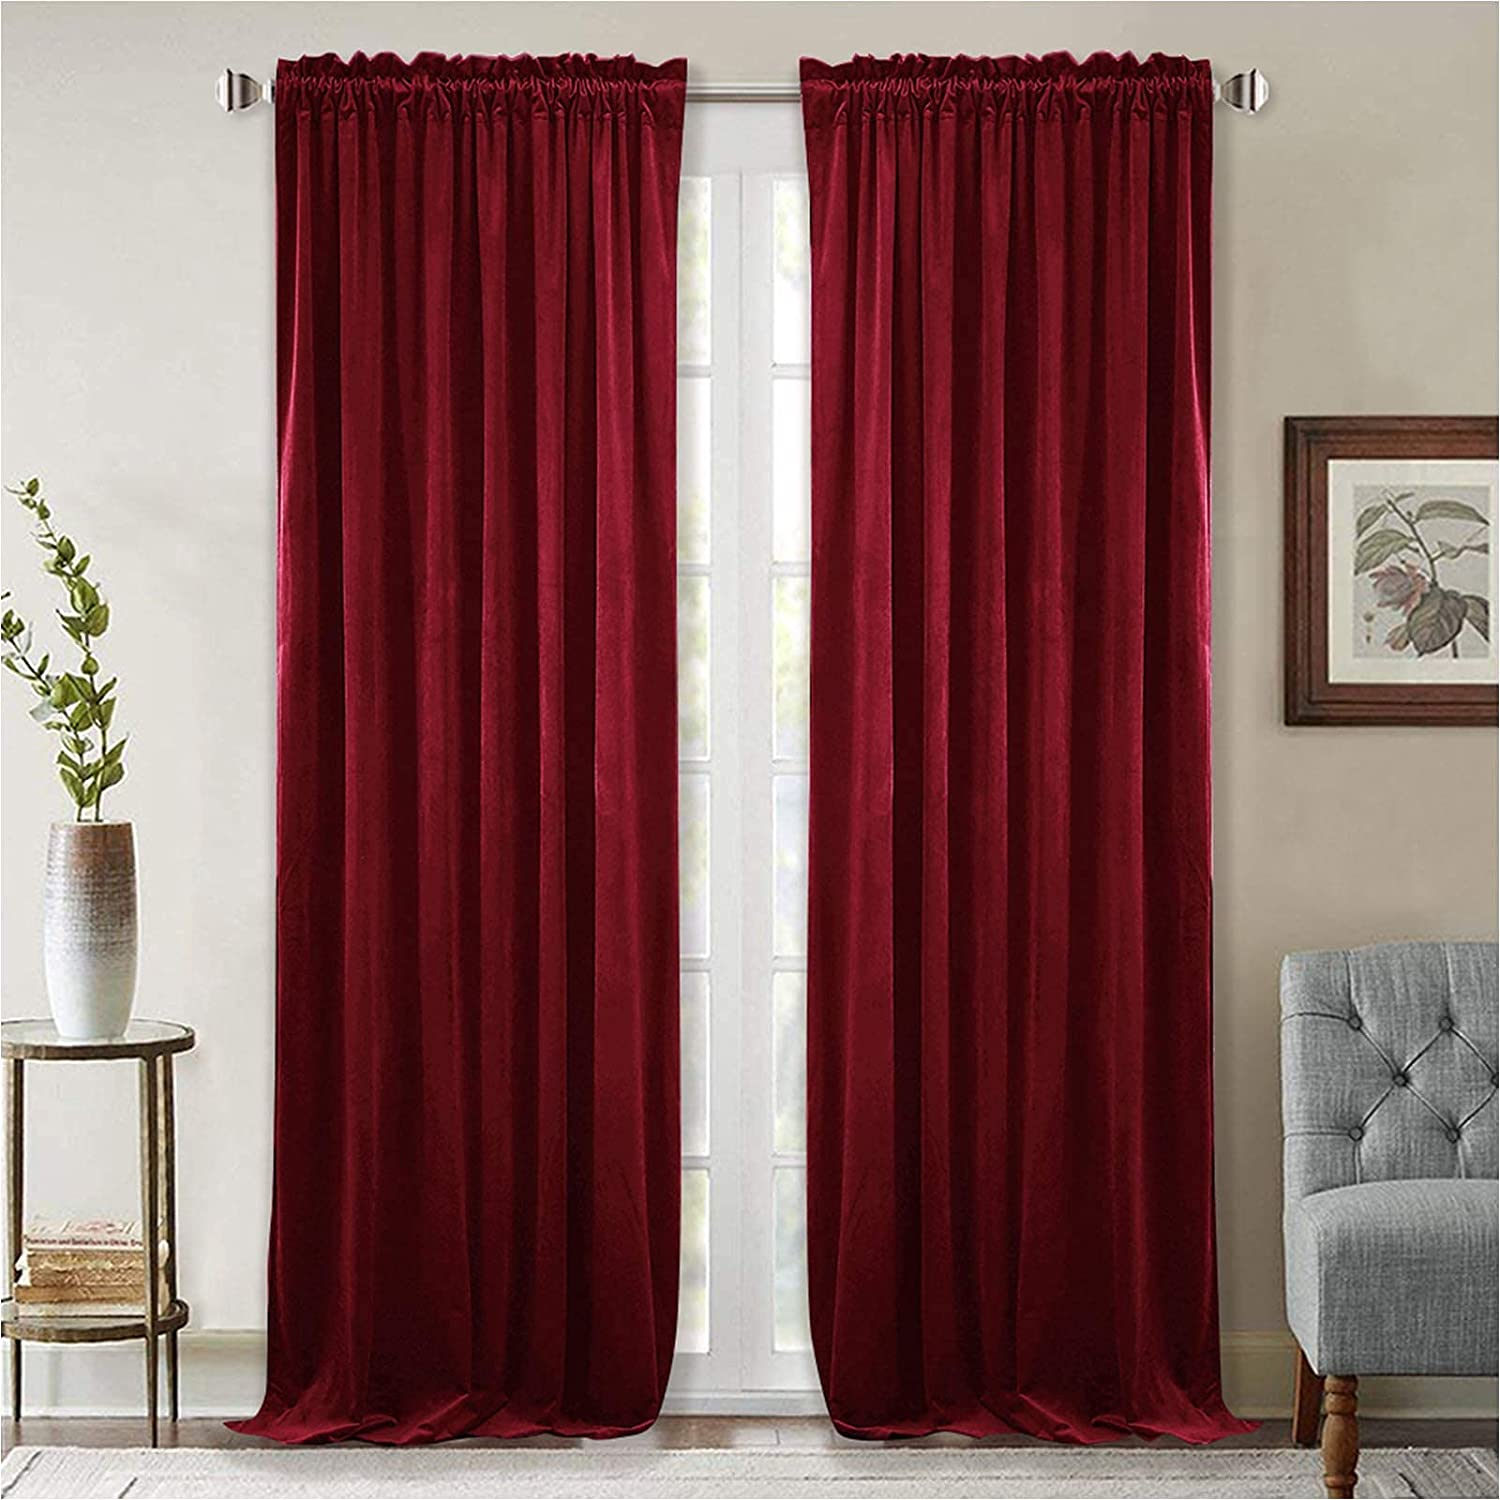 StangH Thick Velvet Curtains 96-inch Large Heavy-Duty Outlet ☆ Free Shipping V New item Window -